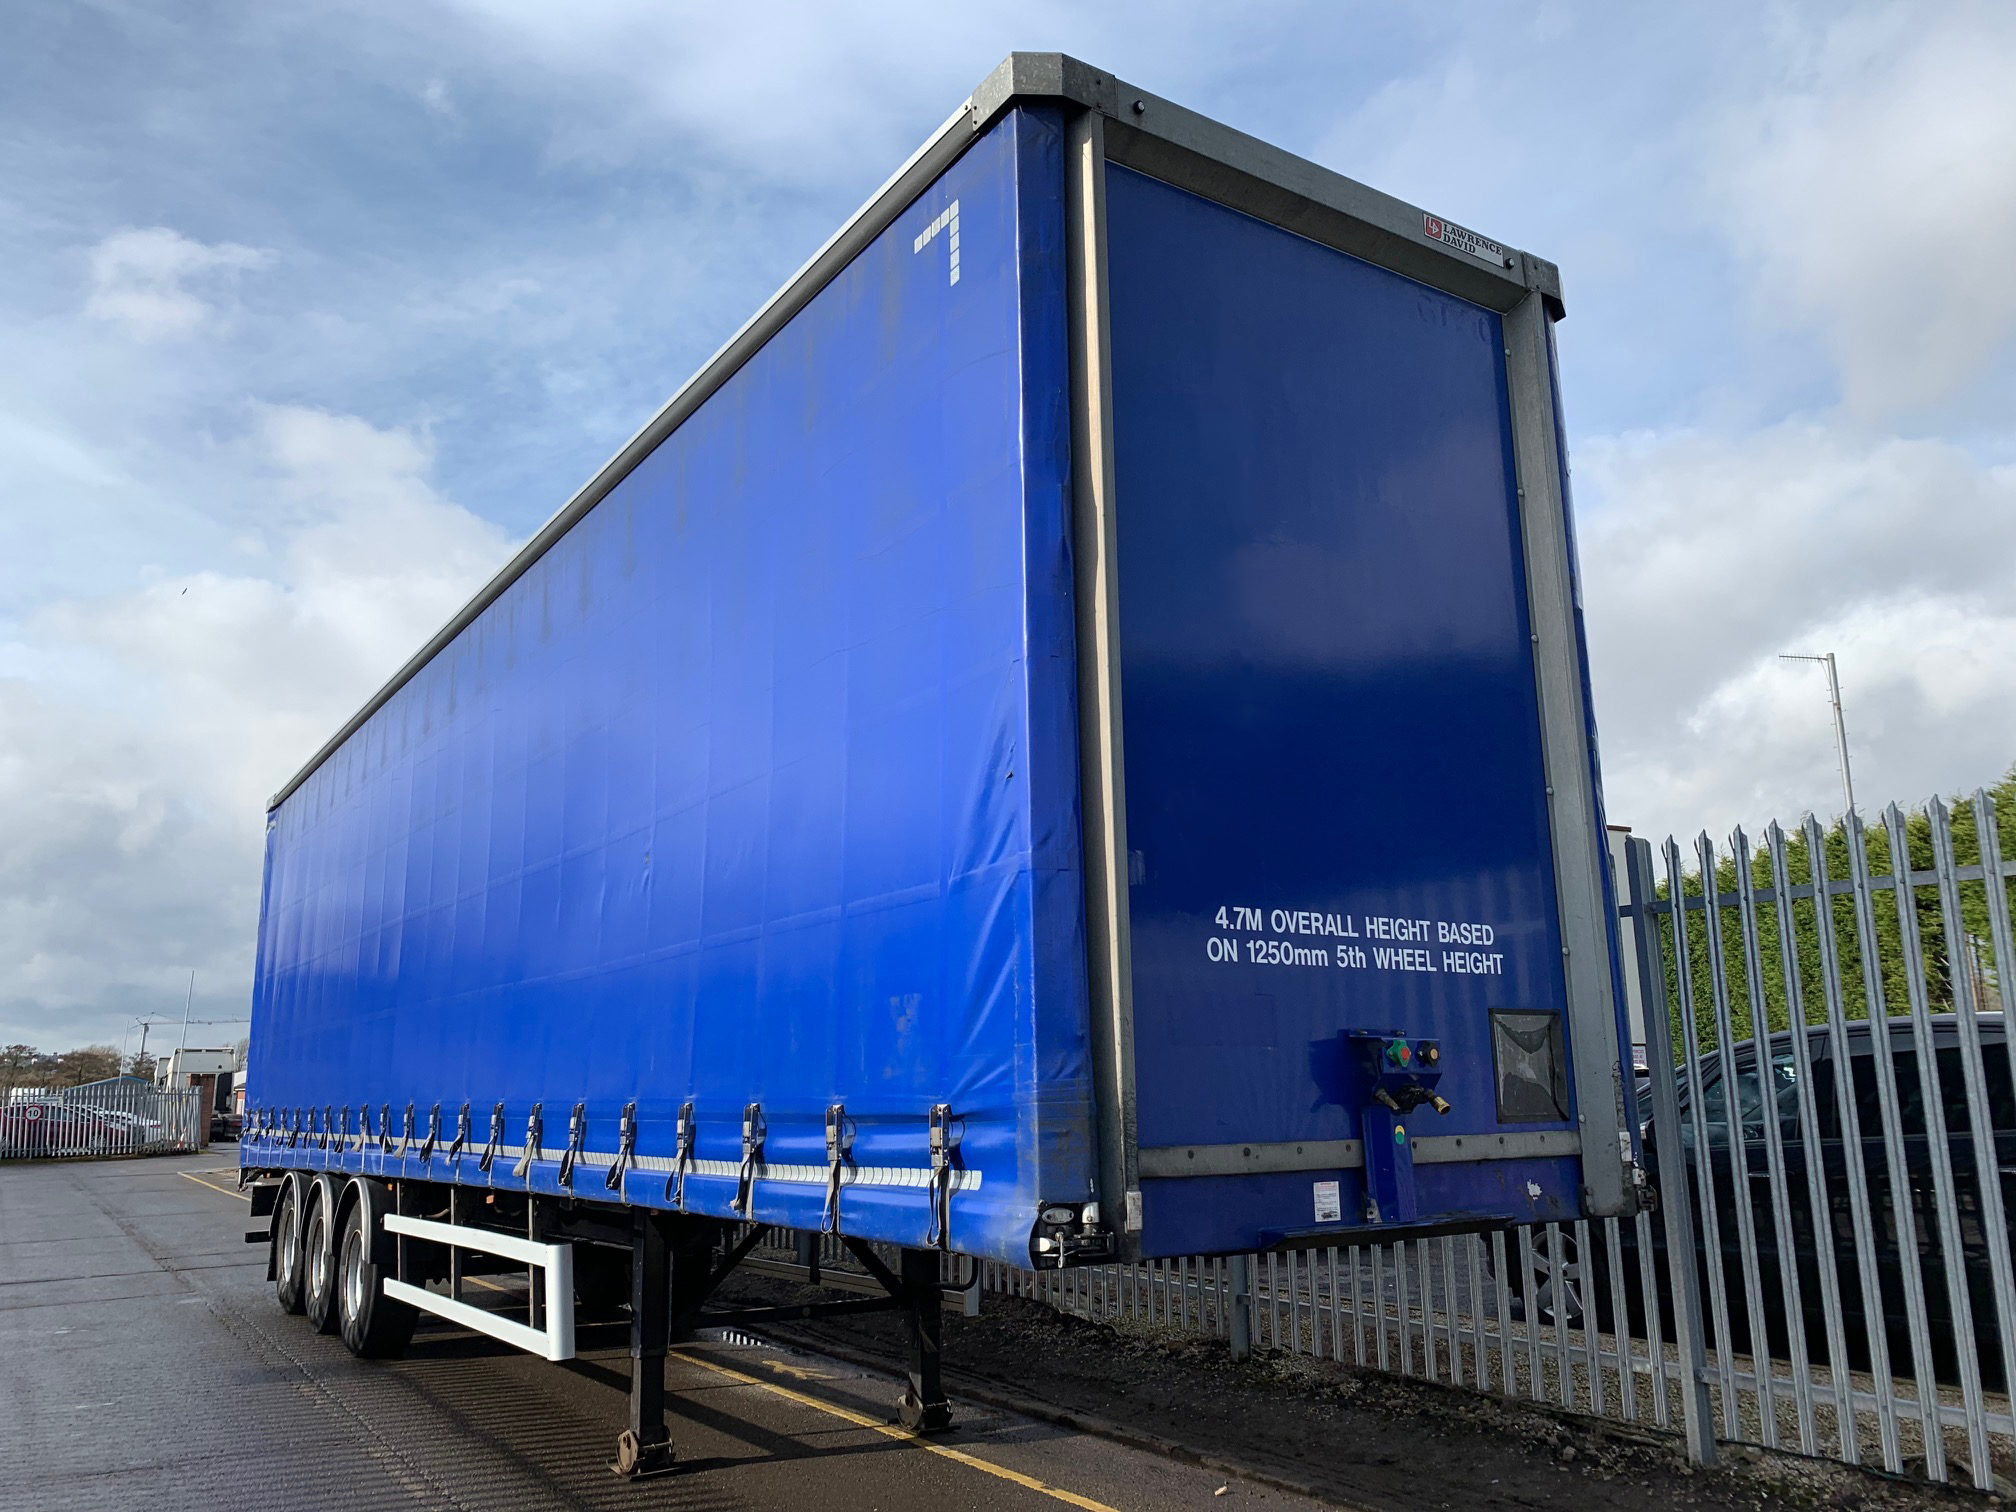 2015 Lawrence David Curtainsider. 4.7m External Height, 3.05m Internal Height, BPW Axles, Drum Brakes, Wisa Deck Floor, Barn Doors, Pillarless, Raise Lower Valve Facility. Choice of 4 Available.